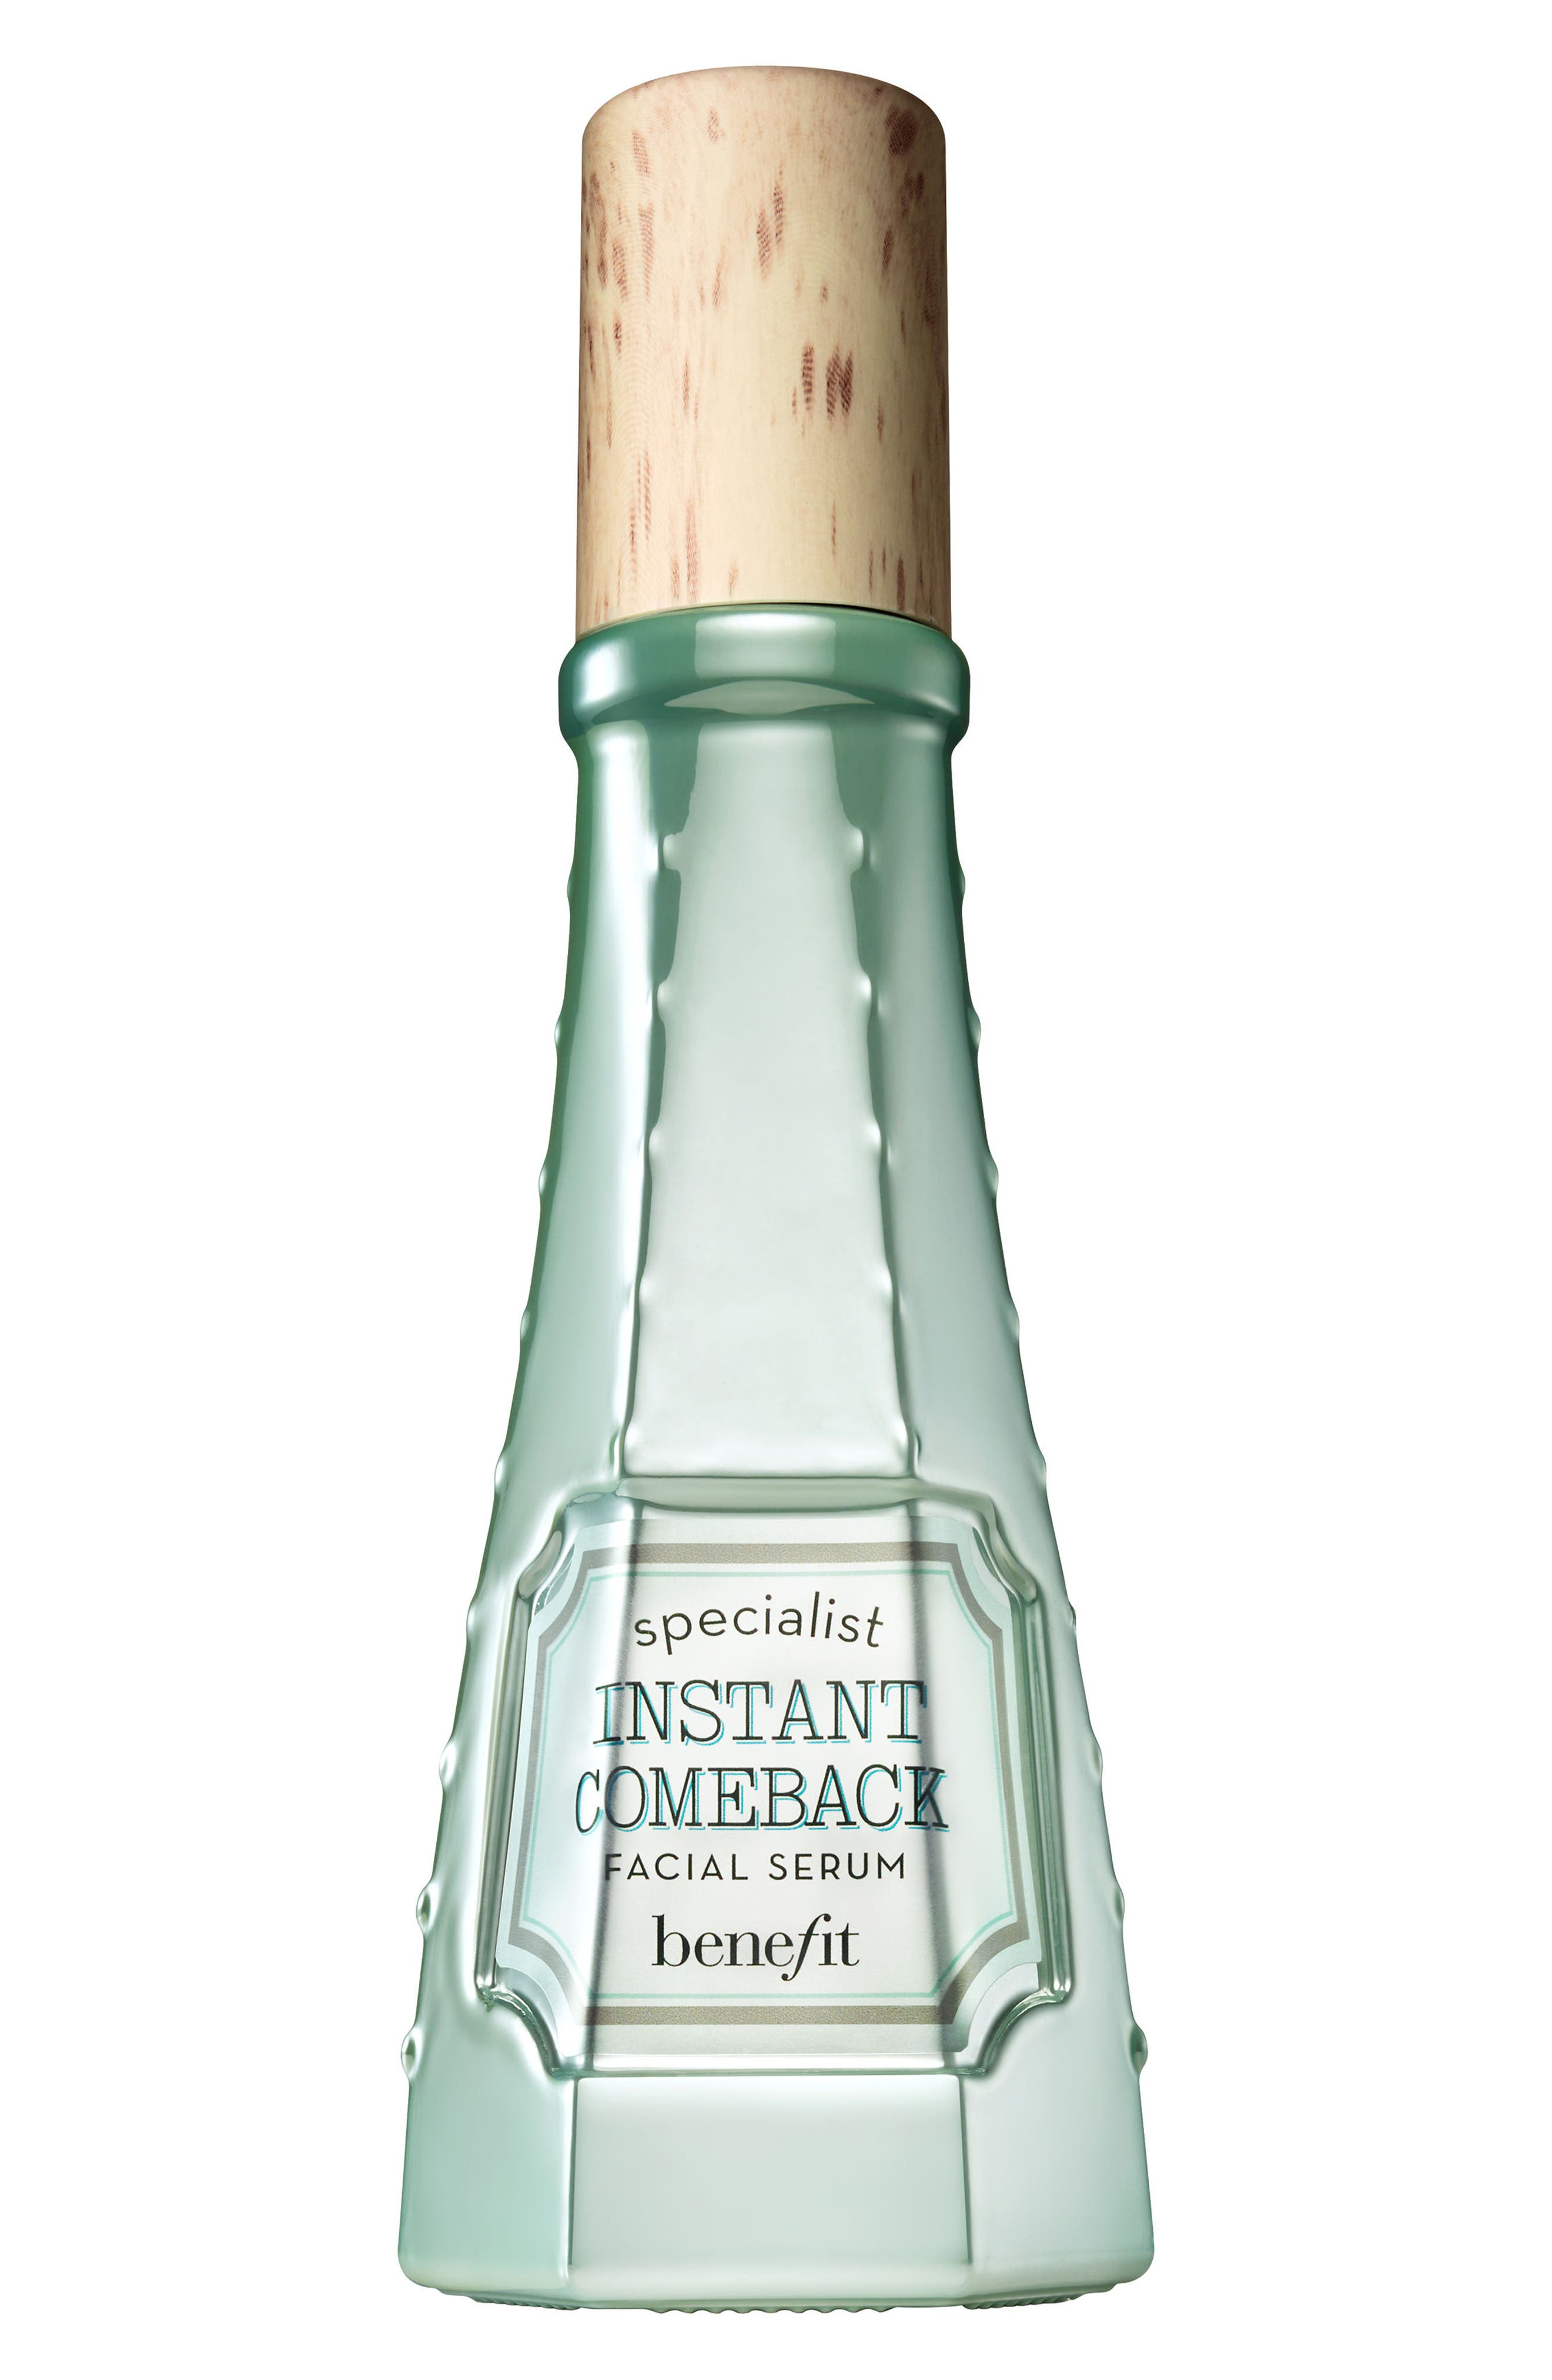 Benefit Instant Comeback Age-Defying Facial Serum